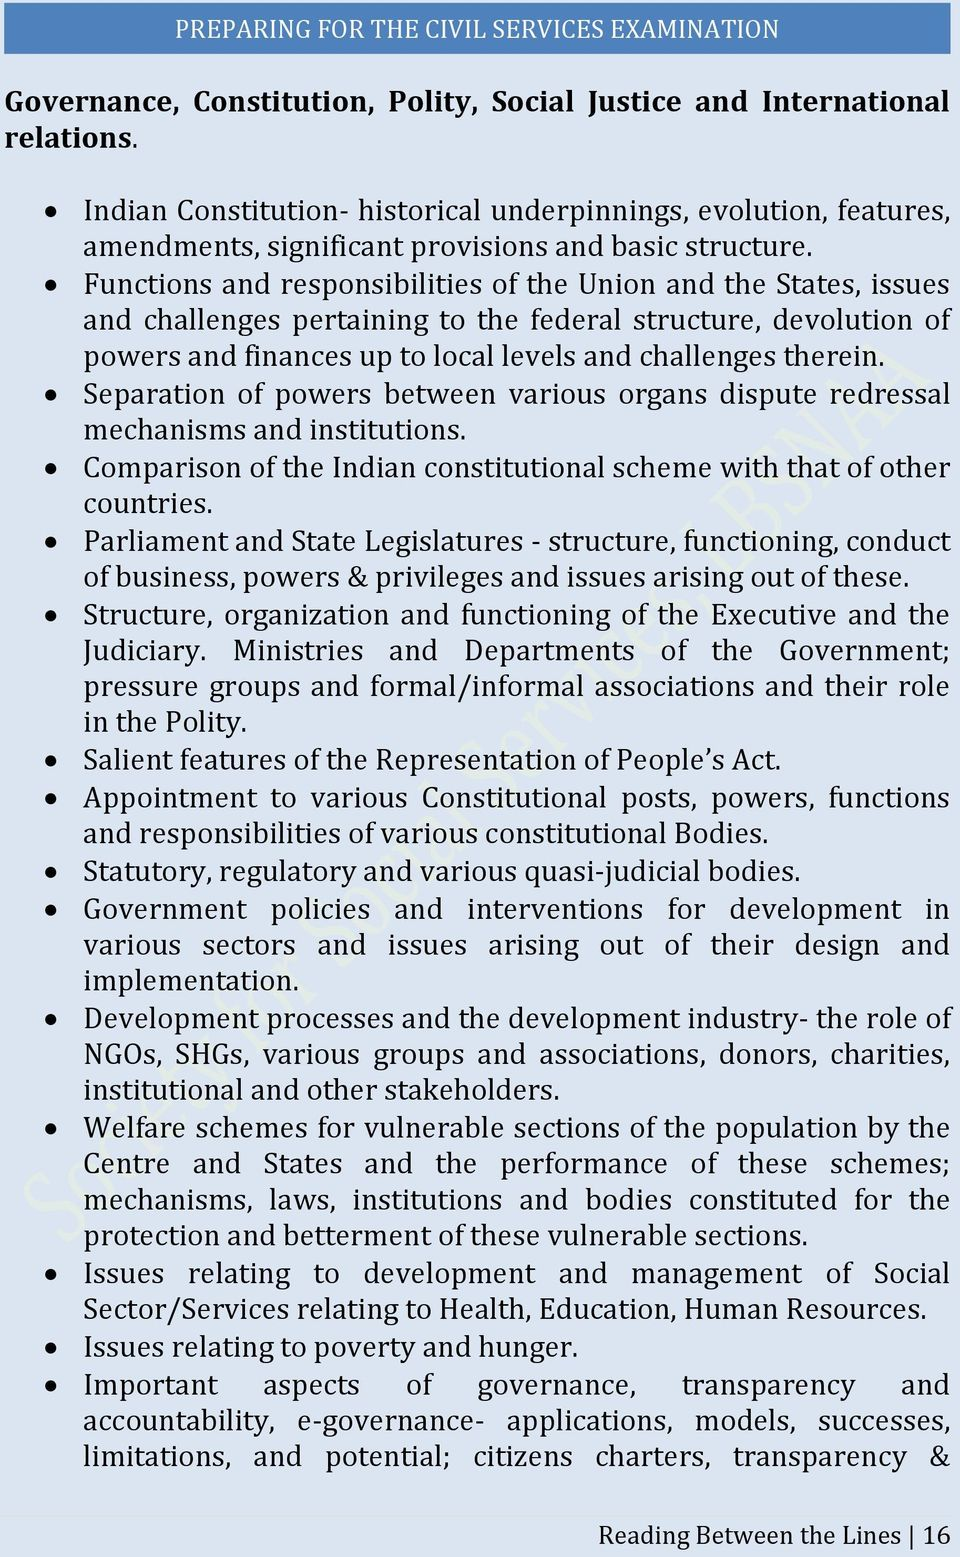 Functions and responsibilities of the Union and the States, issues and challenges pertaining to the federal structure, devolution of powers and finances up to local levels and challenges therein.